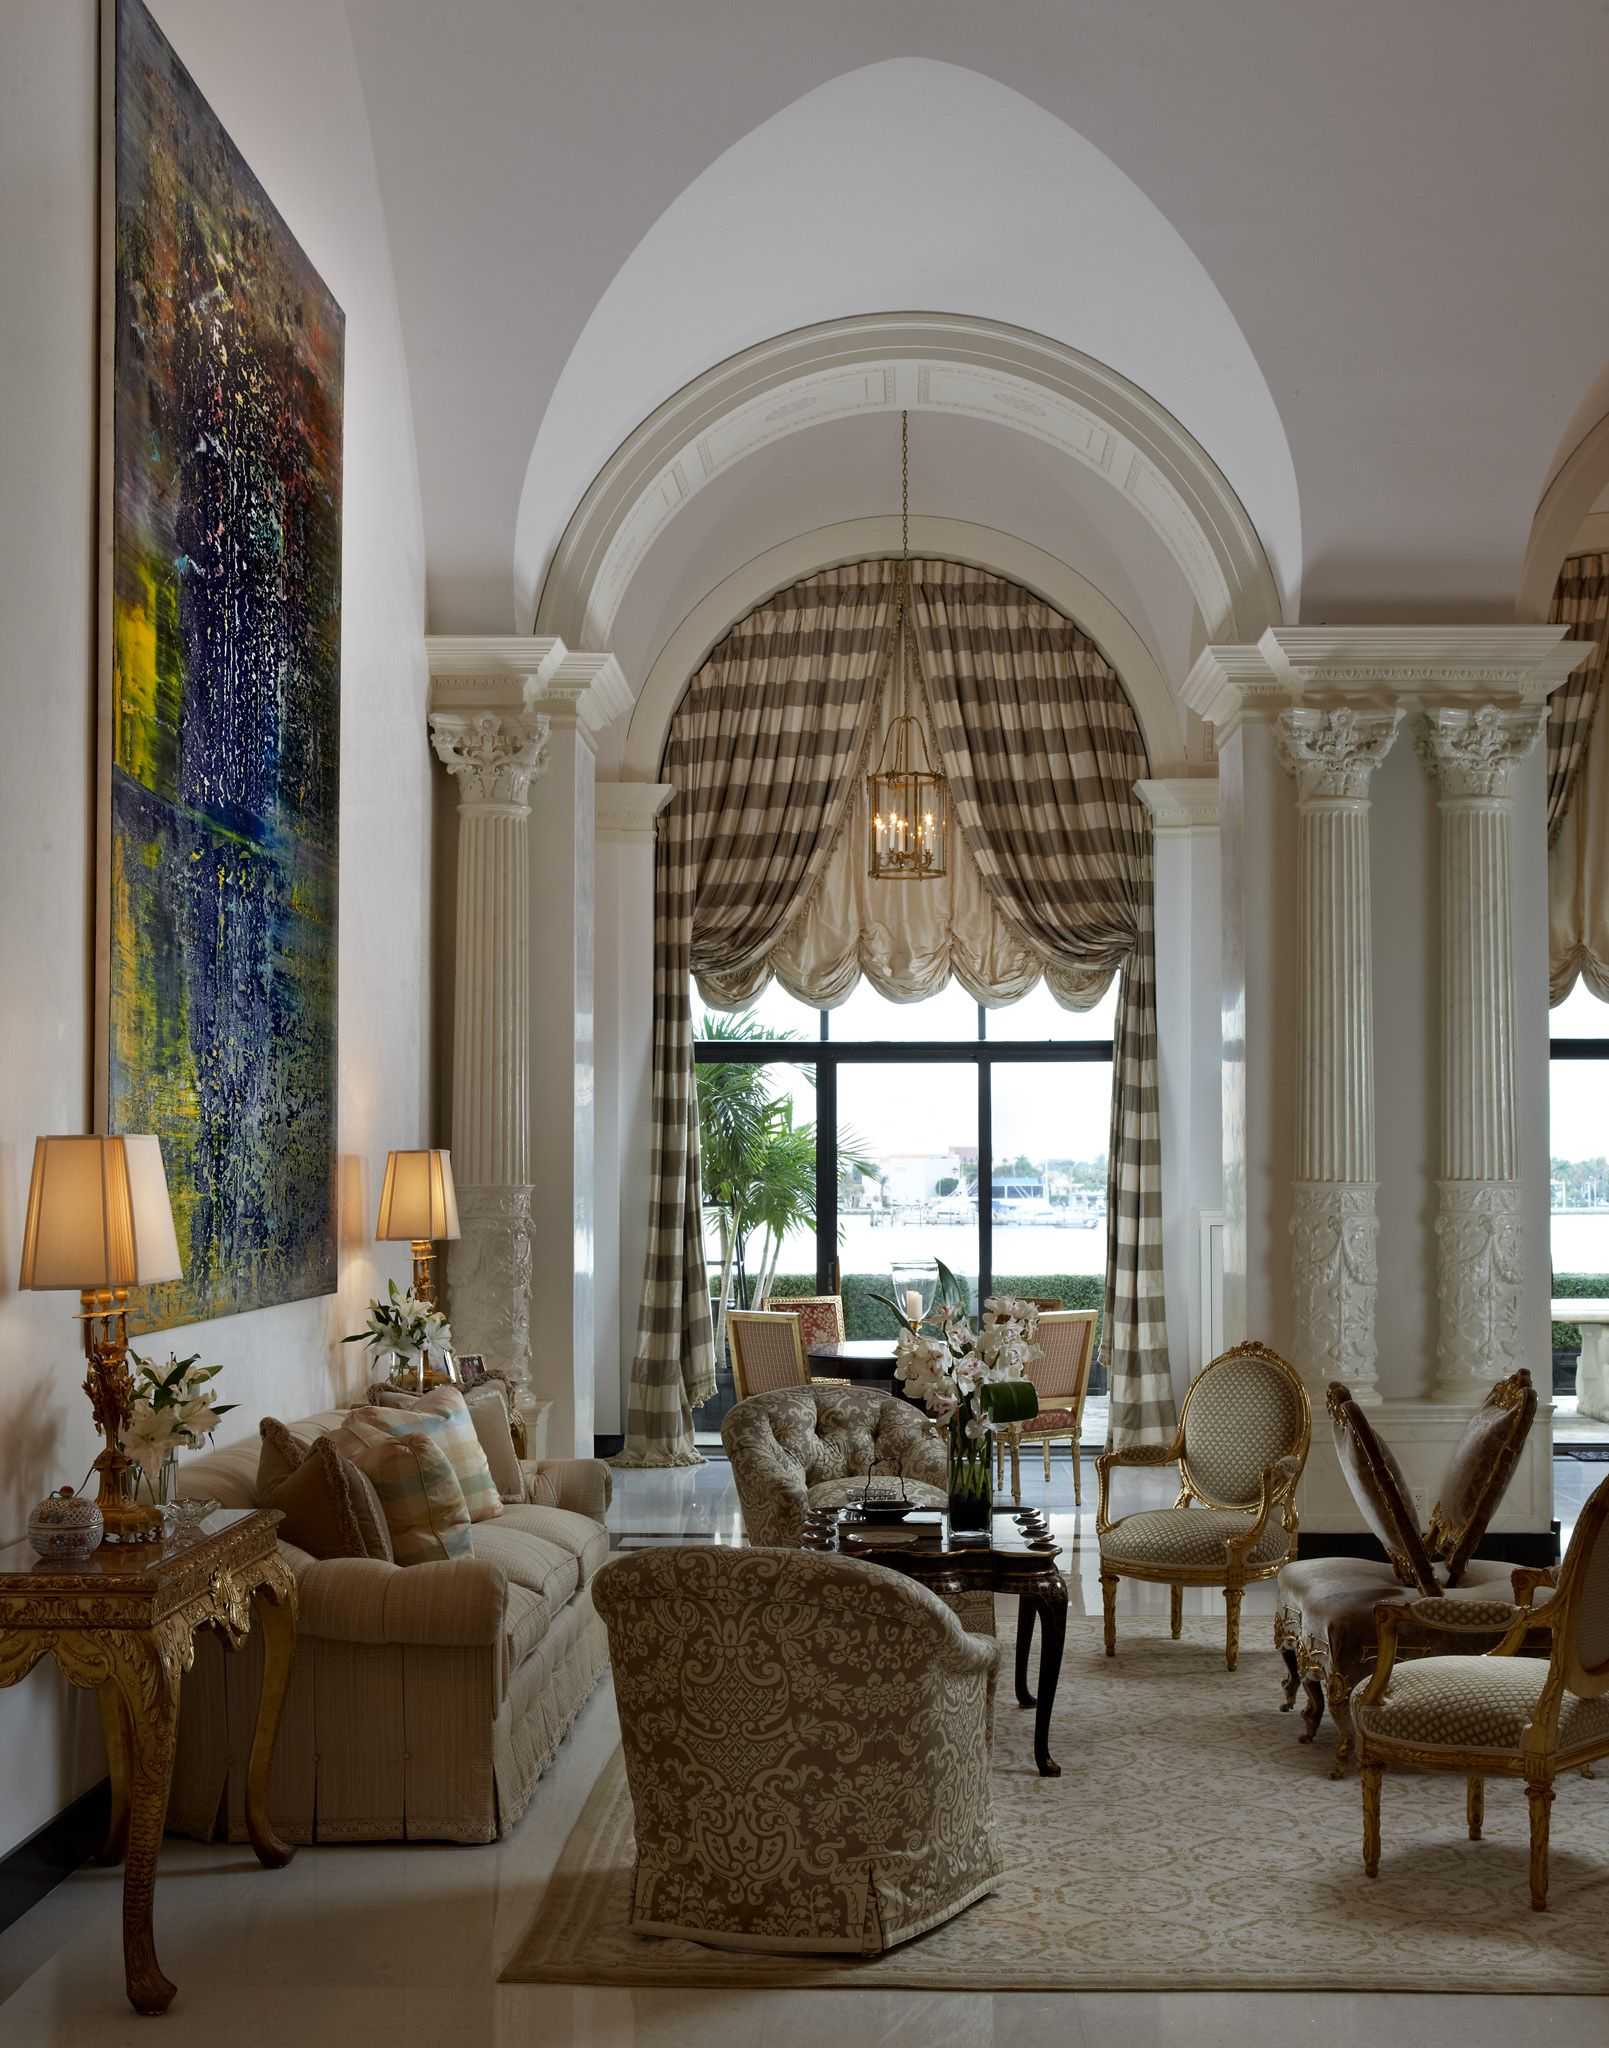 Windows For Family Room; I Want The Draperies To Tie Back At The Hem Of The  Scalloped Balloon Shades Scott Snyder Interior Design   Palm Beach, FL